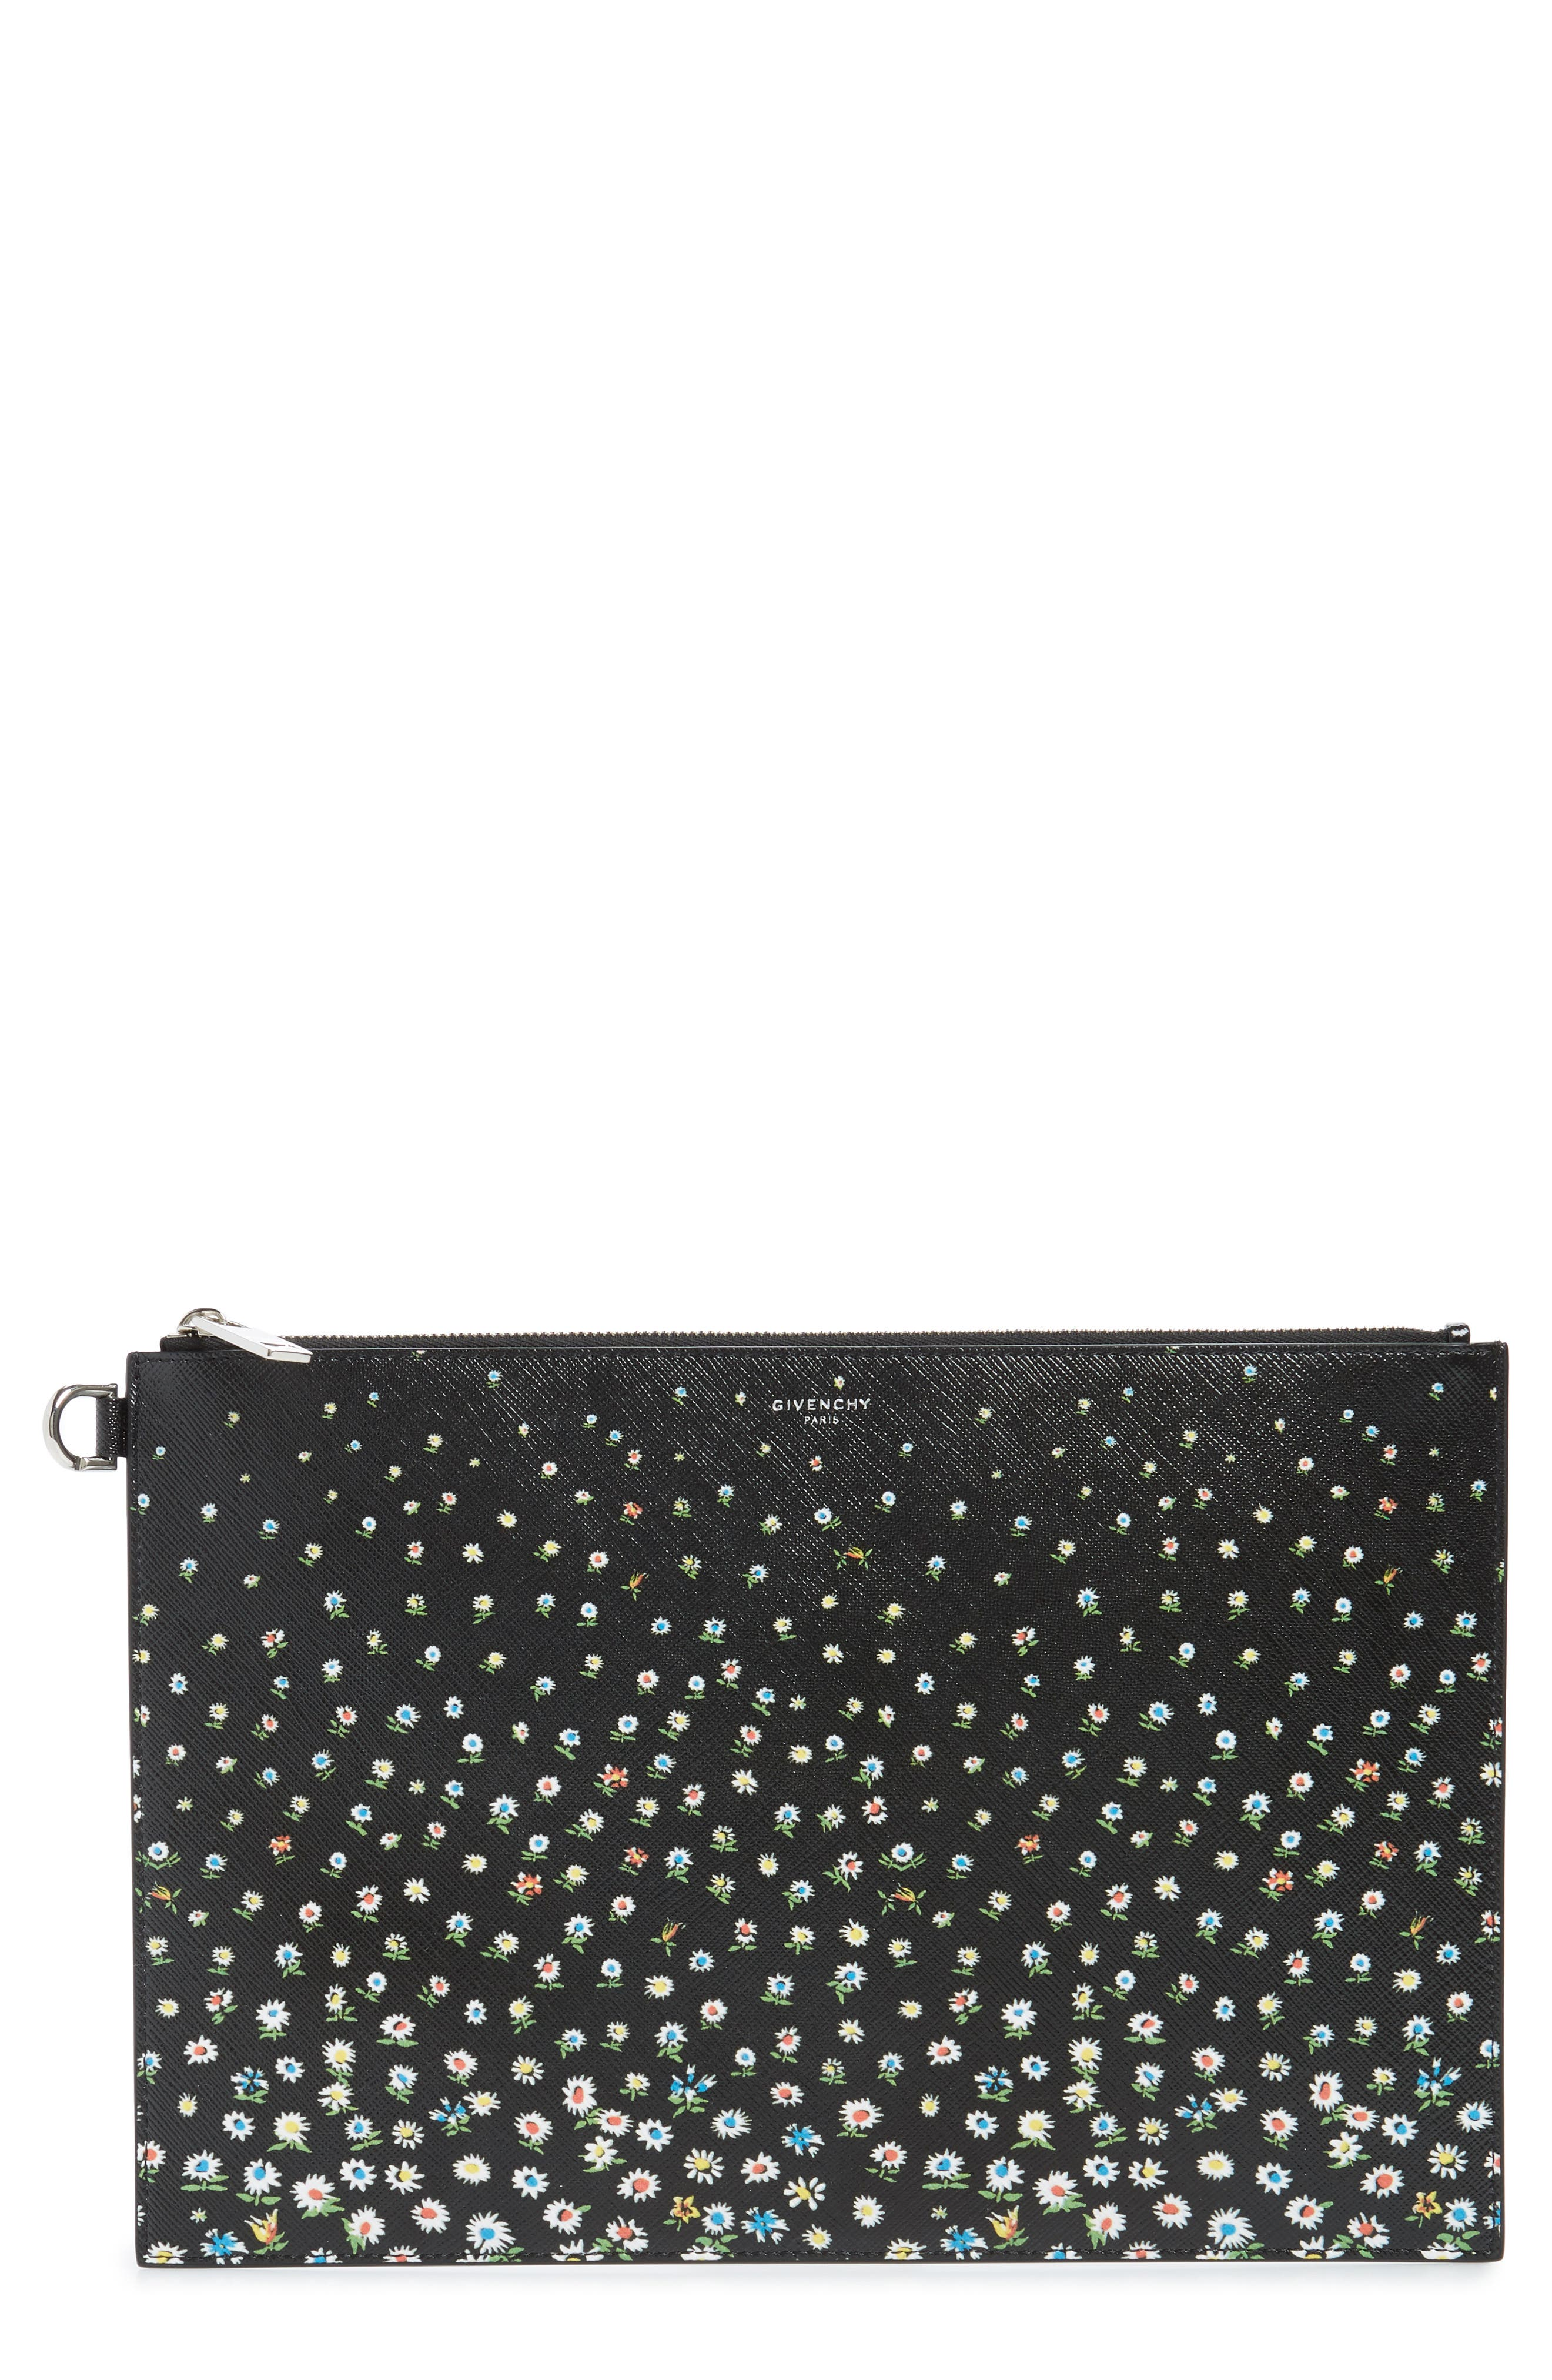 GIVENCHY, Medium Iconic Coated Canvas Pouch, Main thumbnail 1, color, BLACK